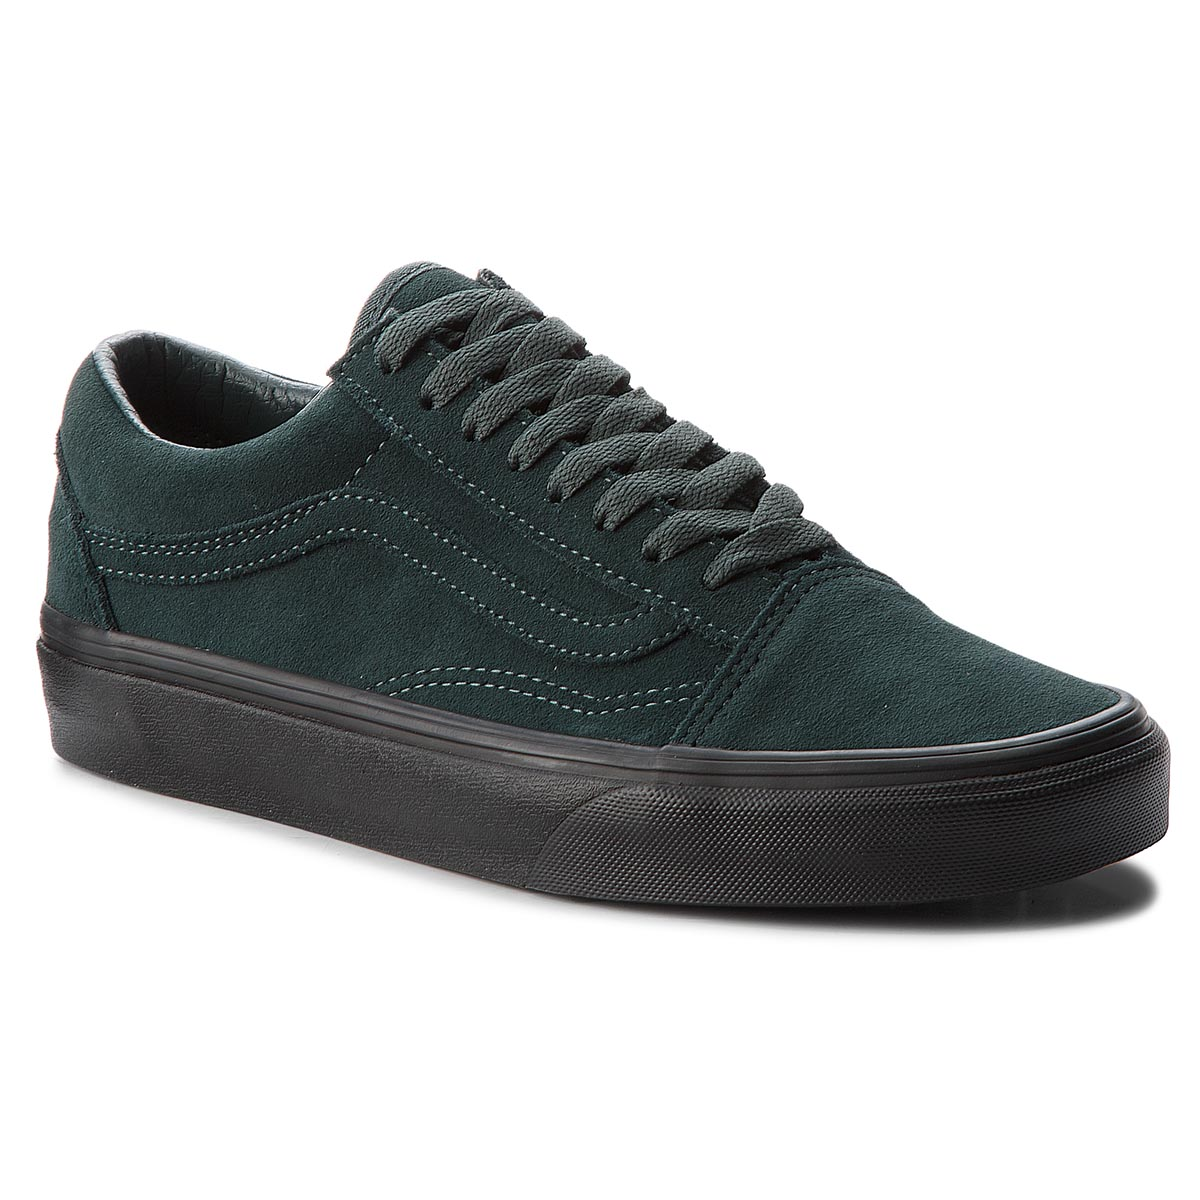 Teniși VANS - Old Skool VN0A38G1U8U (Black Outsole) Darkest S